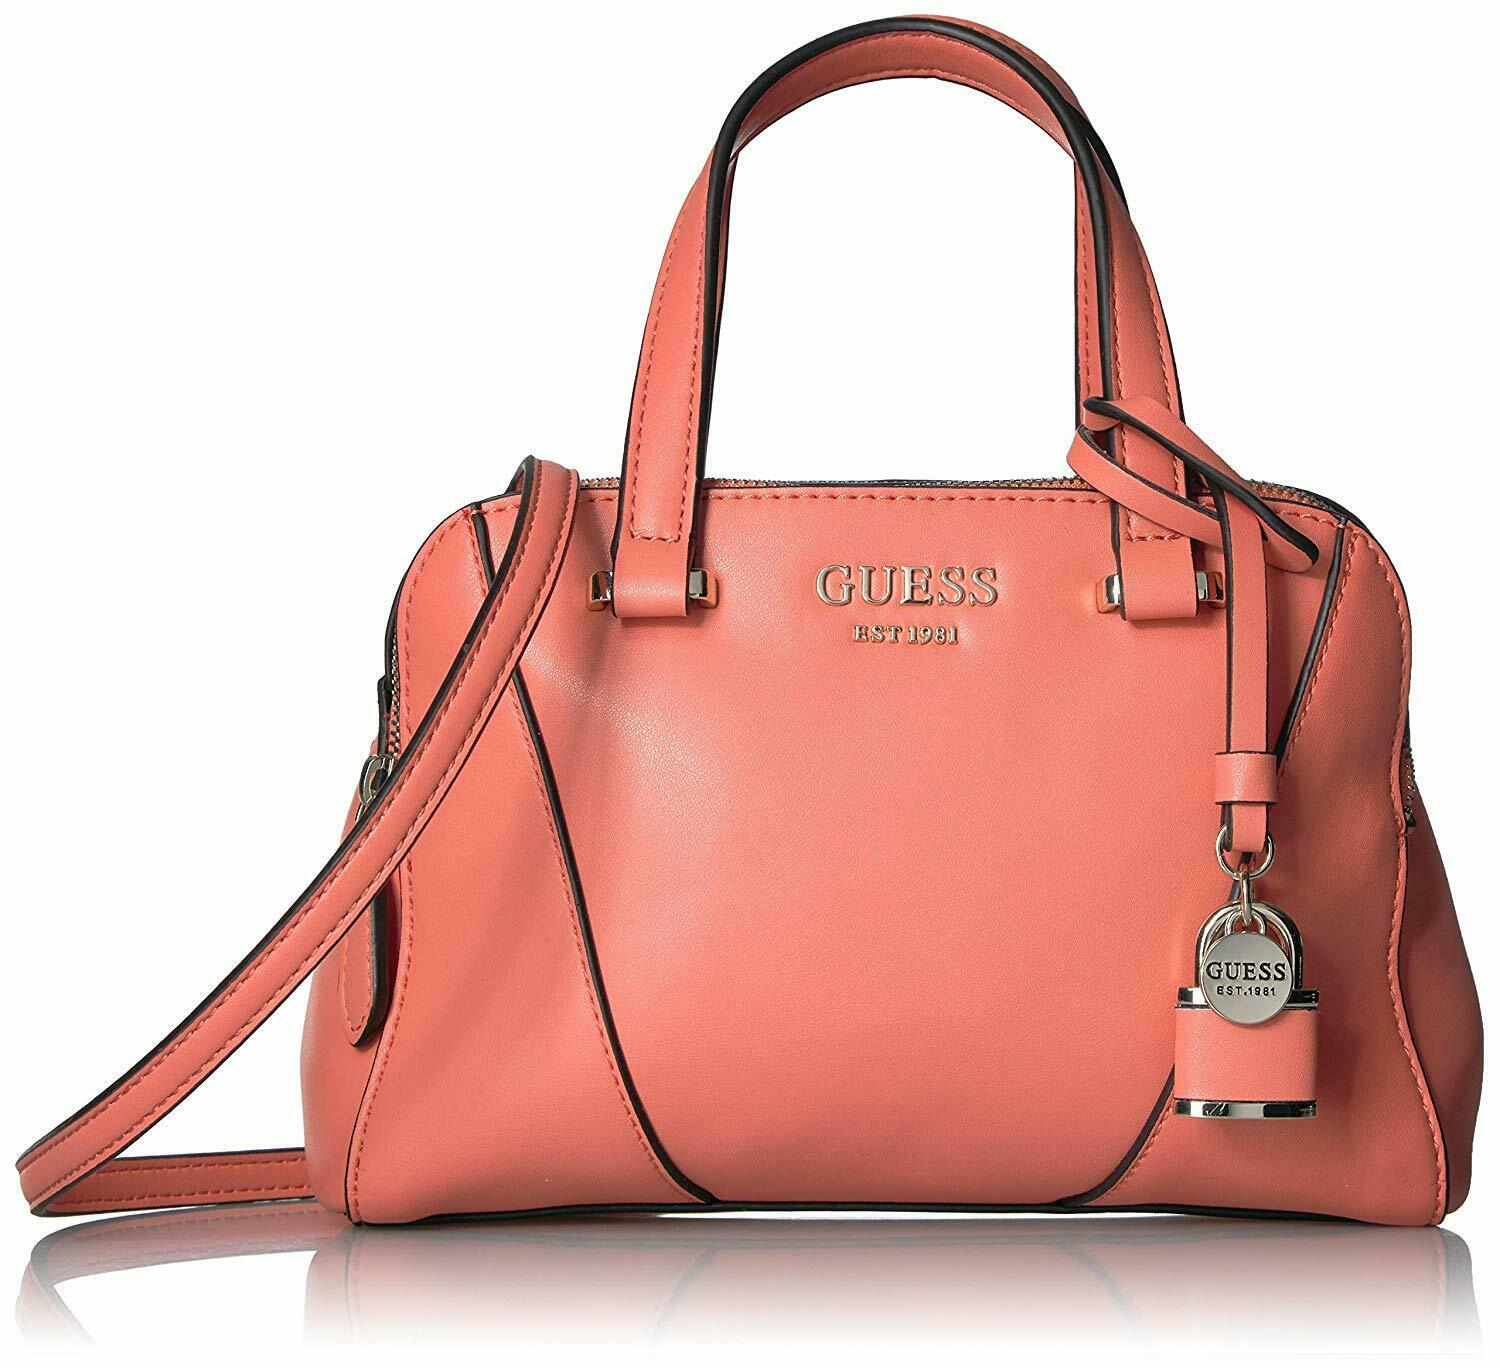 GUESS Shawna Cali Satchel - Coral Style: VG719005 MSRP $115